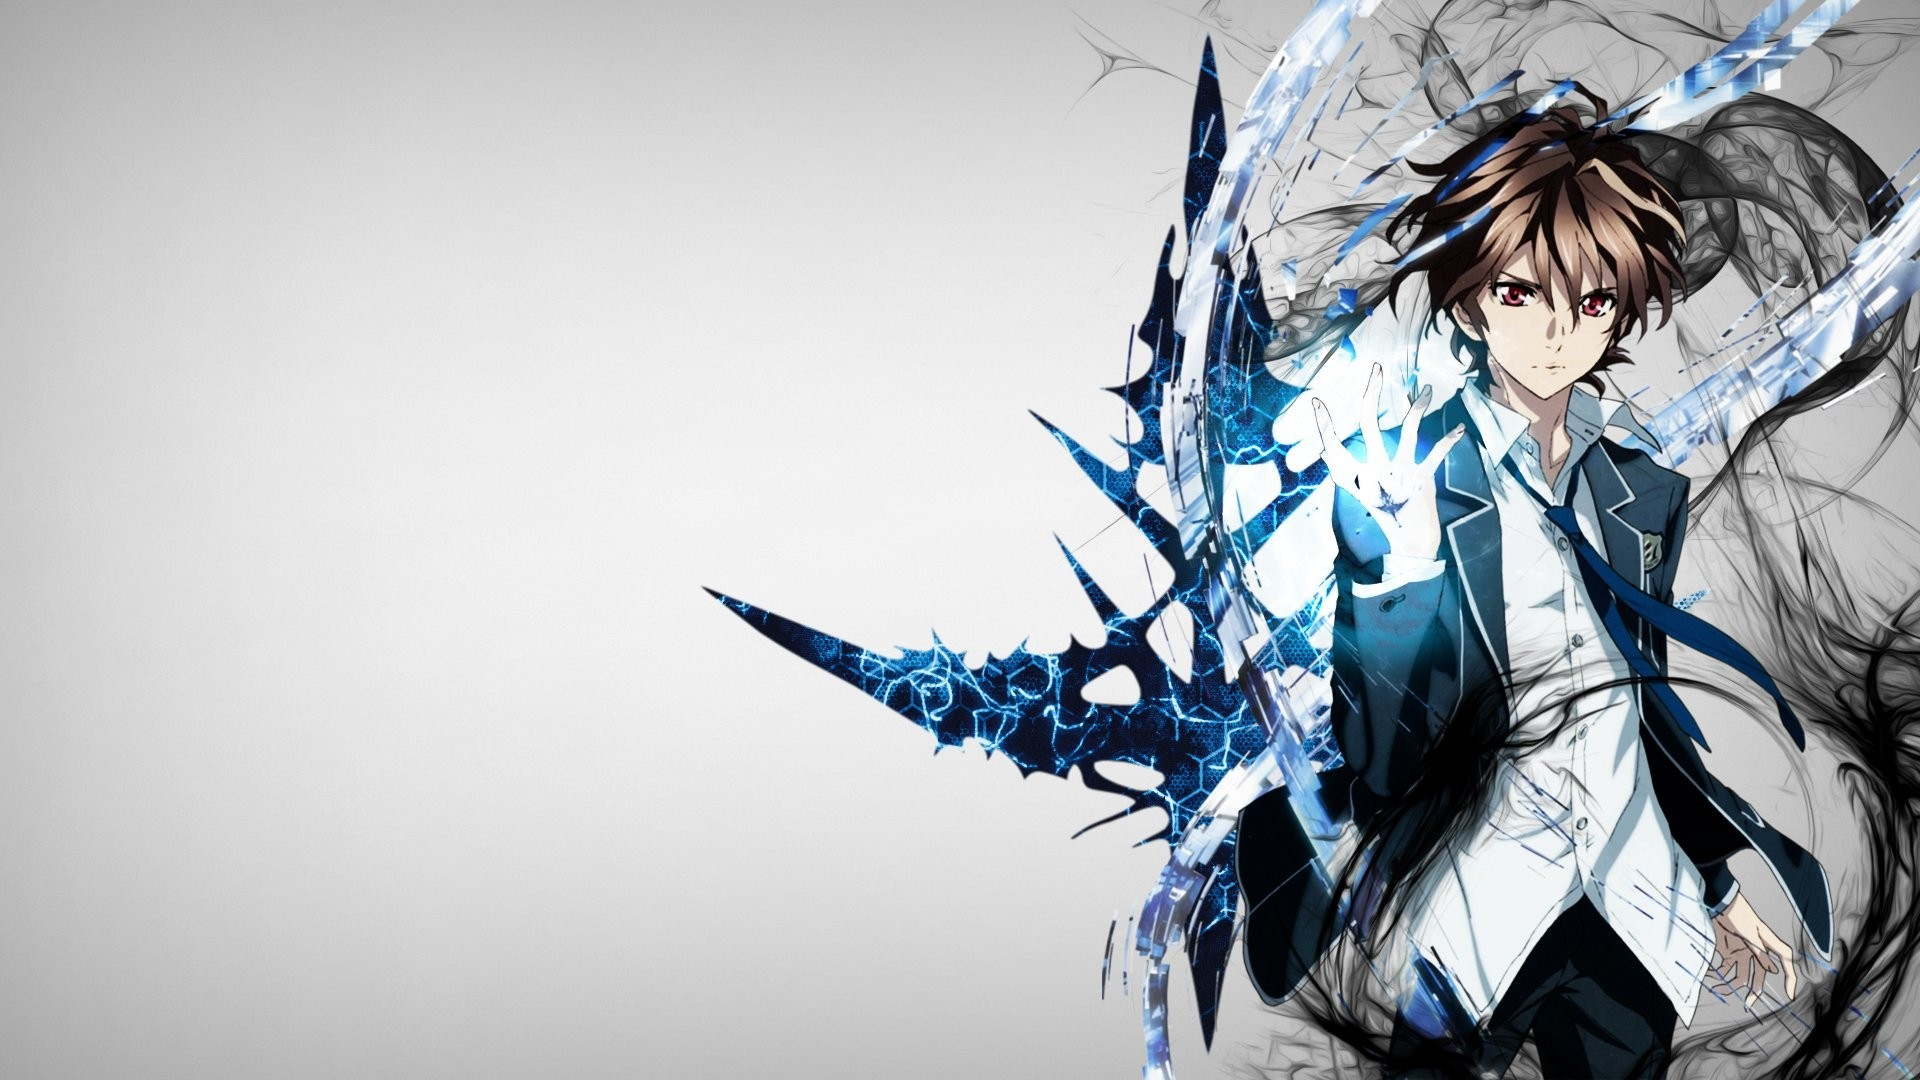 Res: 1920x1080,  Epic Desktop Wallpapers and Backgrounds D Free wallpaper download